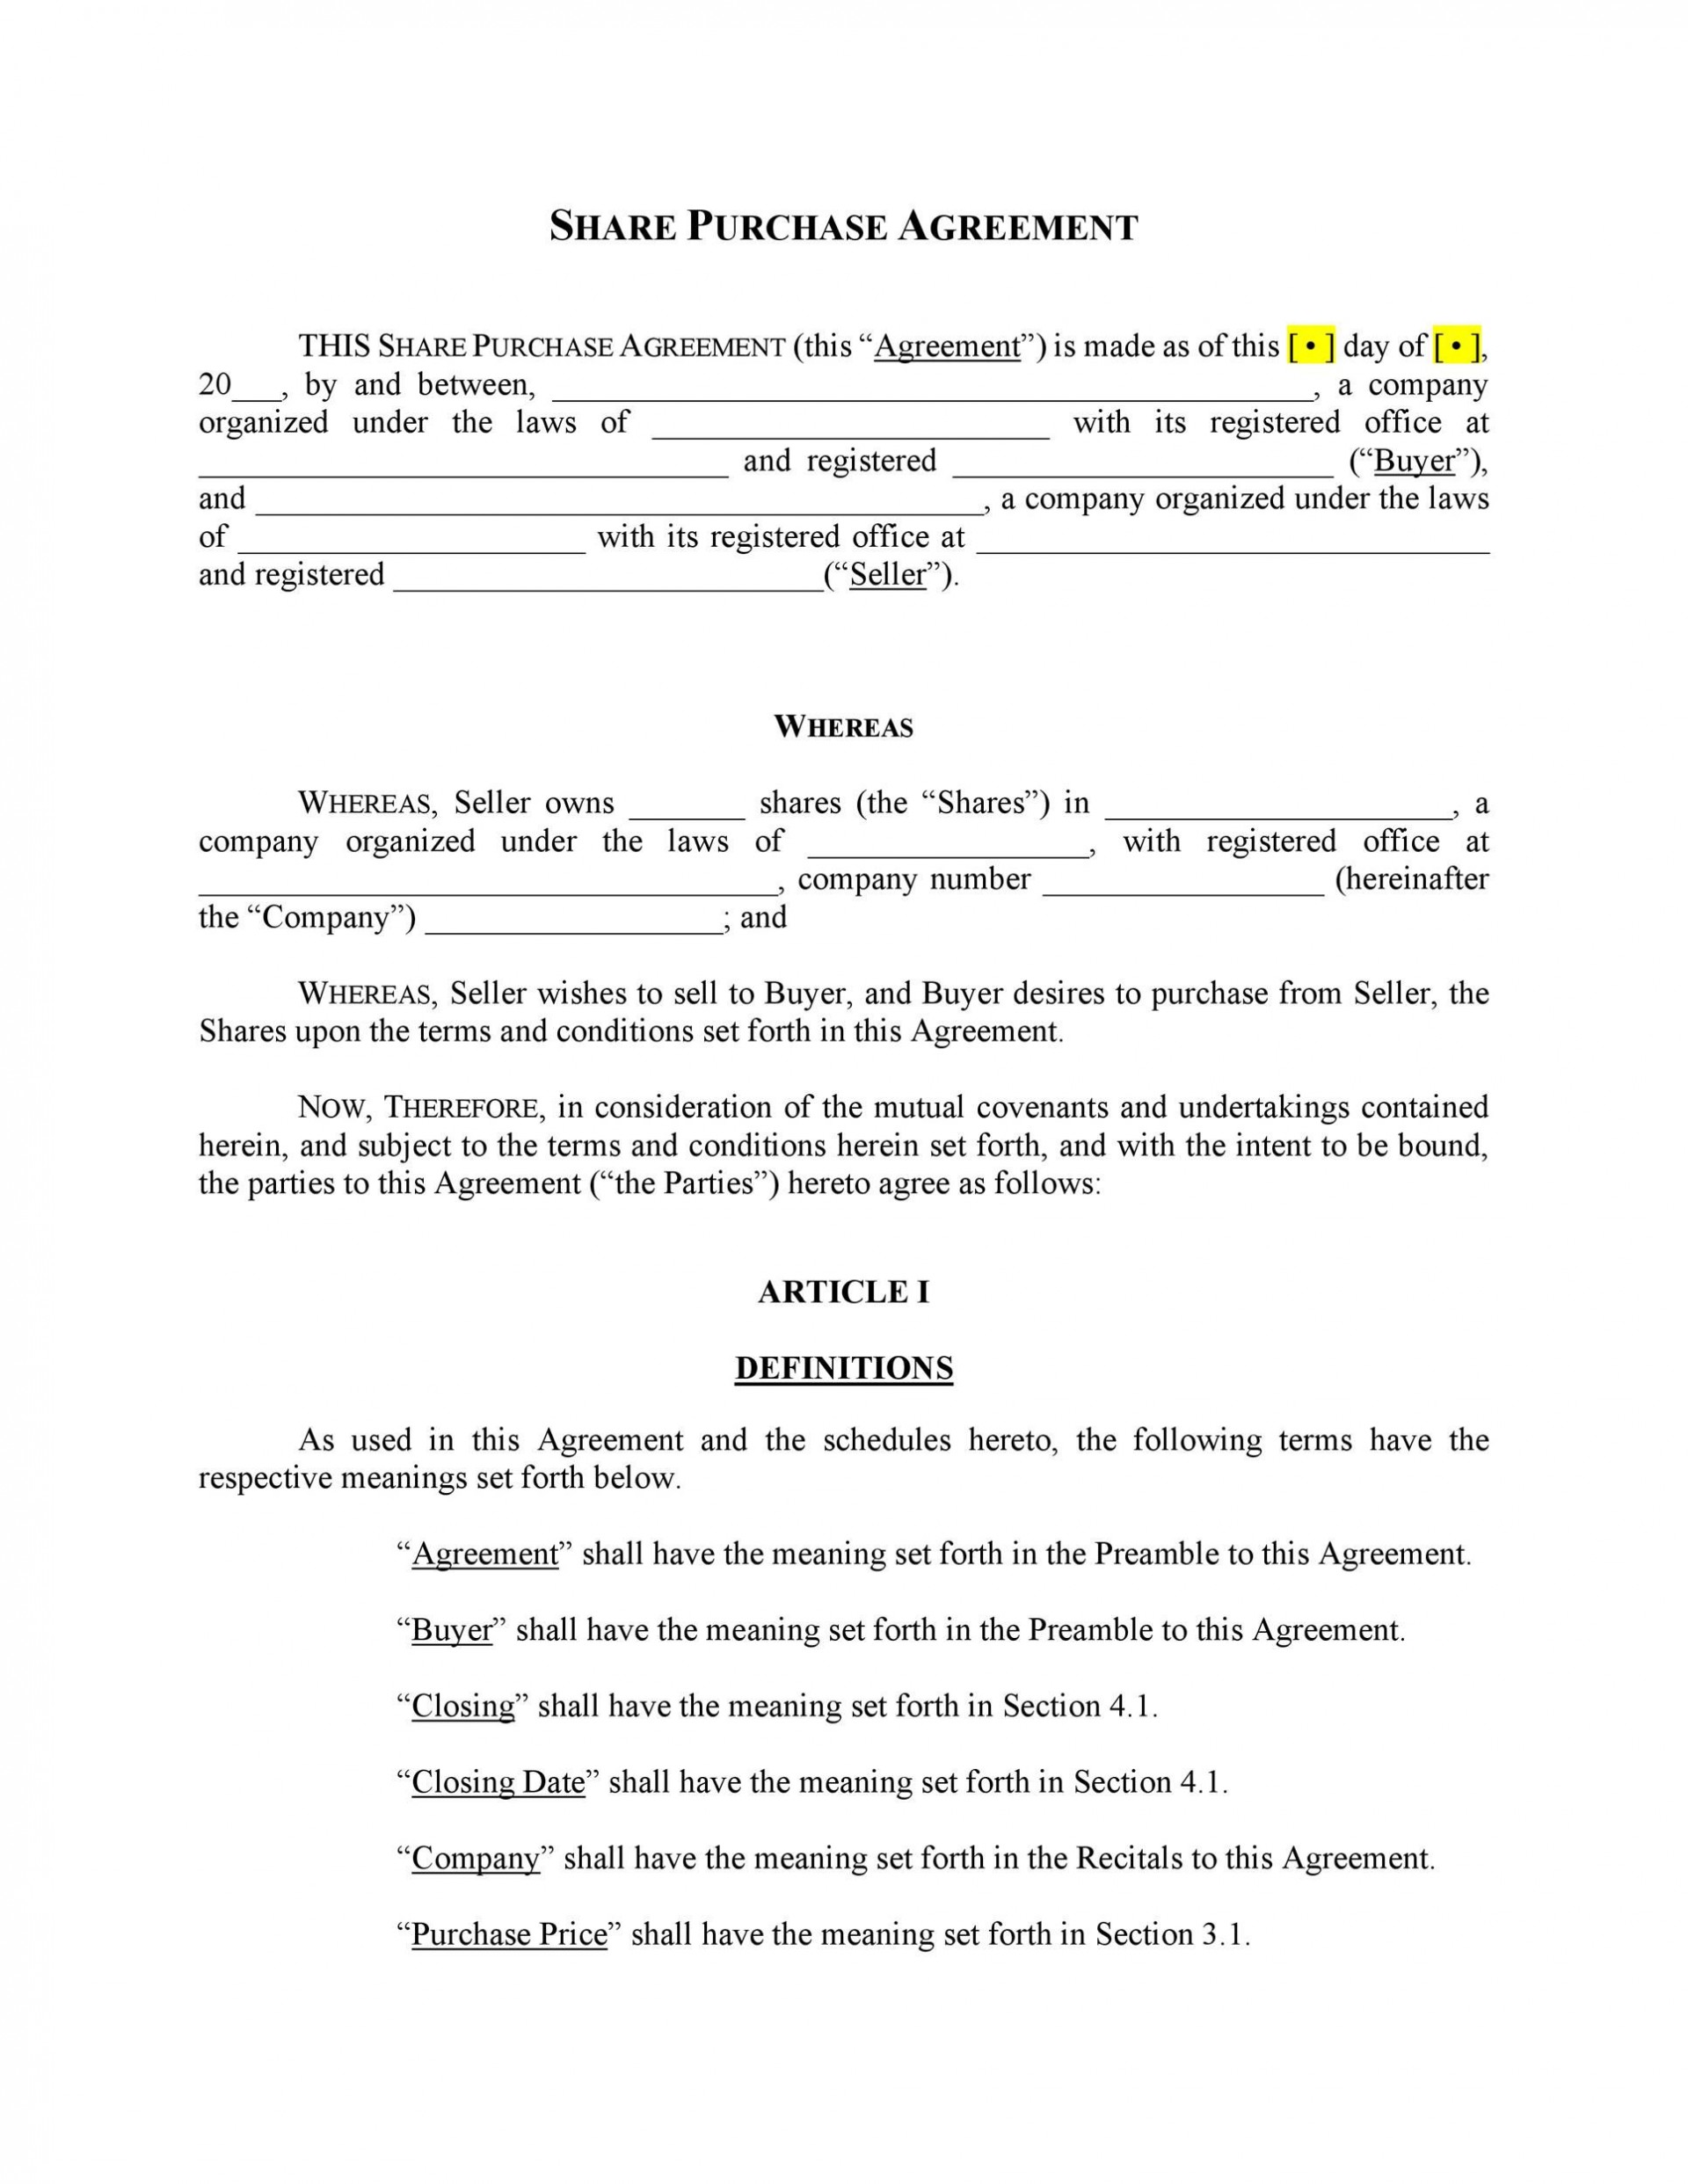 008 Rare Sale Agreement Template Free Concept  Share Australia Word Busines Download South Africa1920